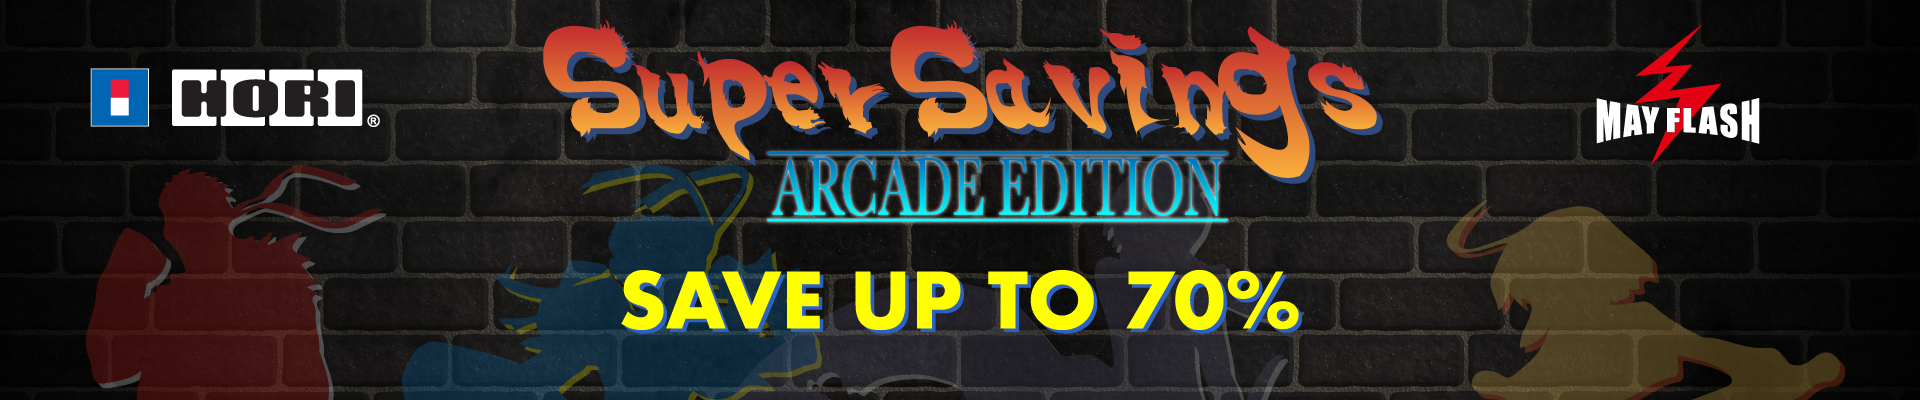 Super Savings Arcade Edition